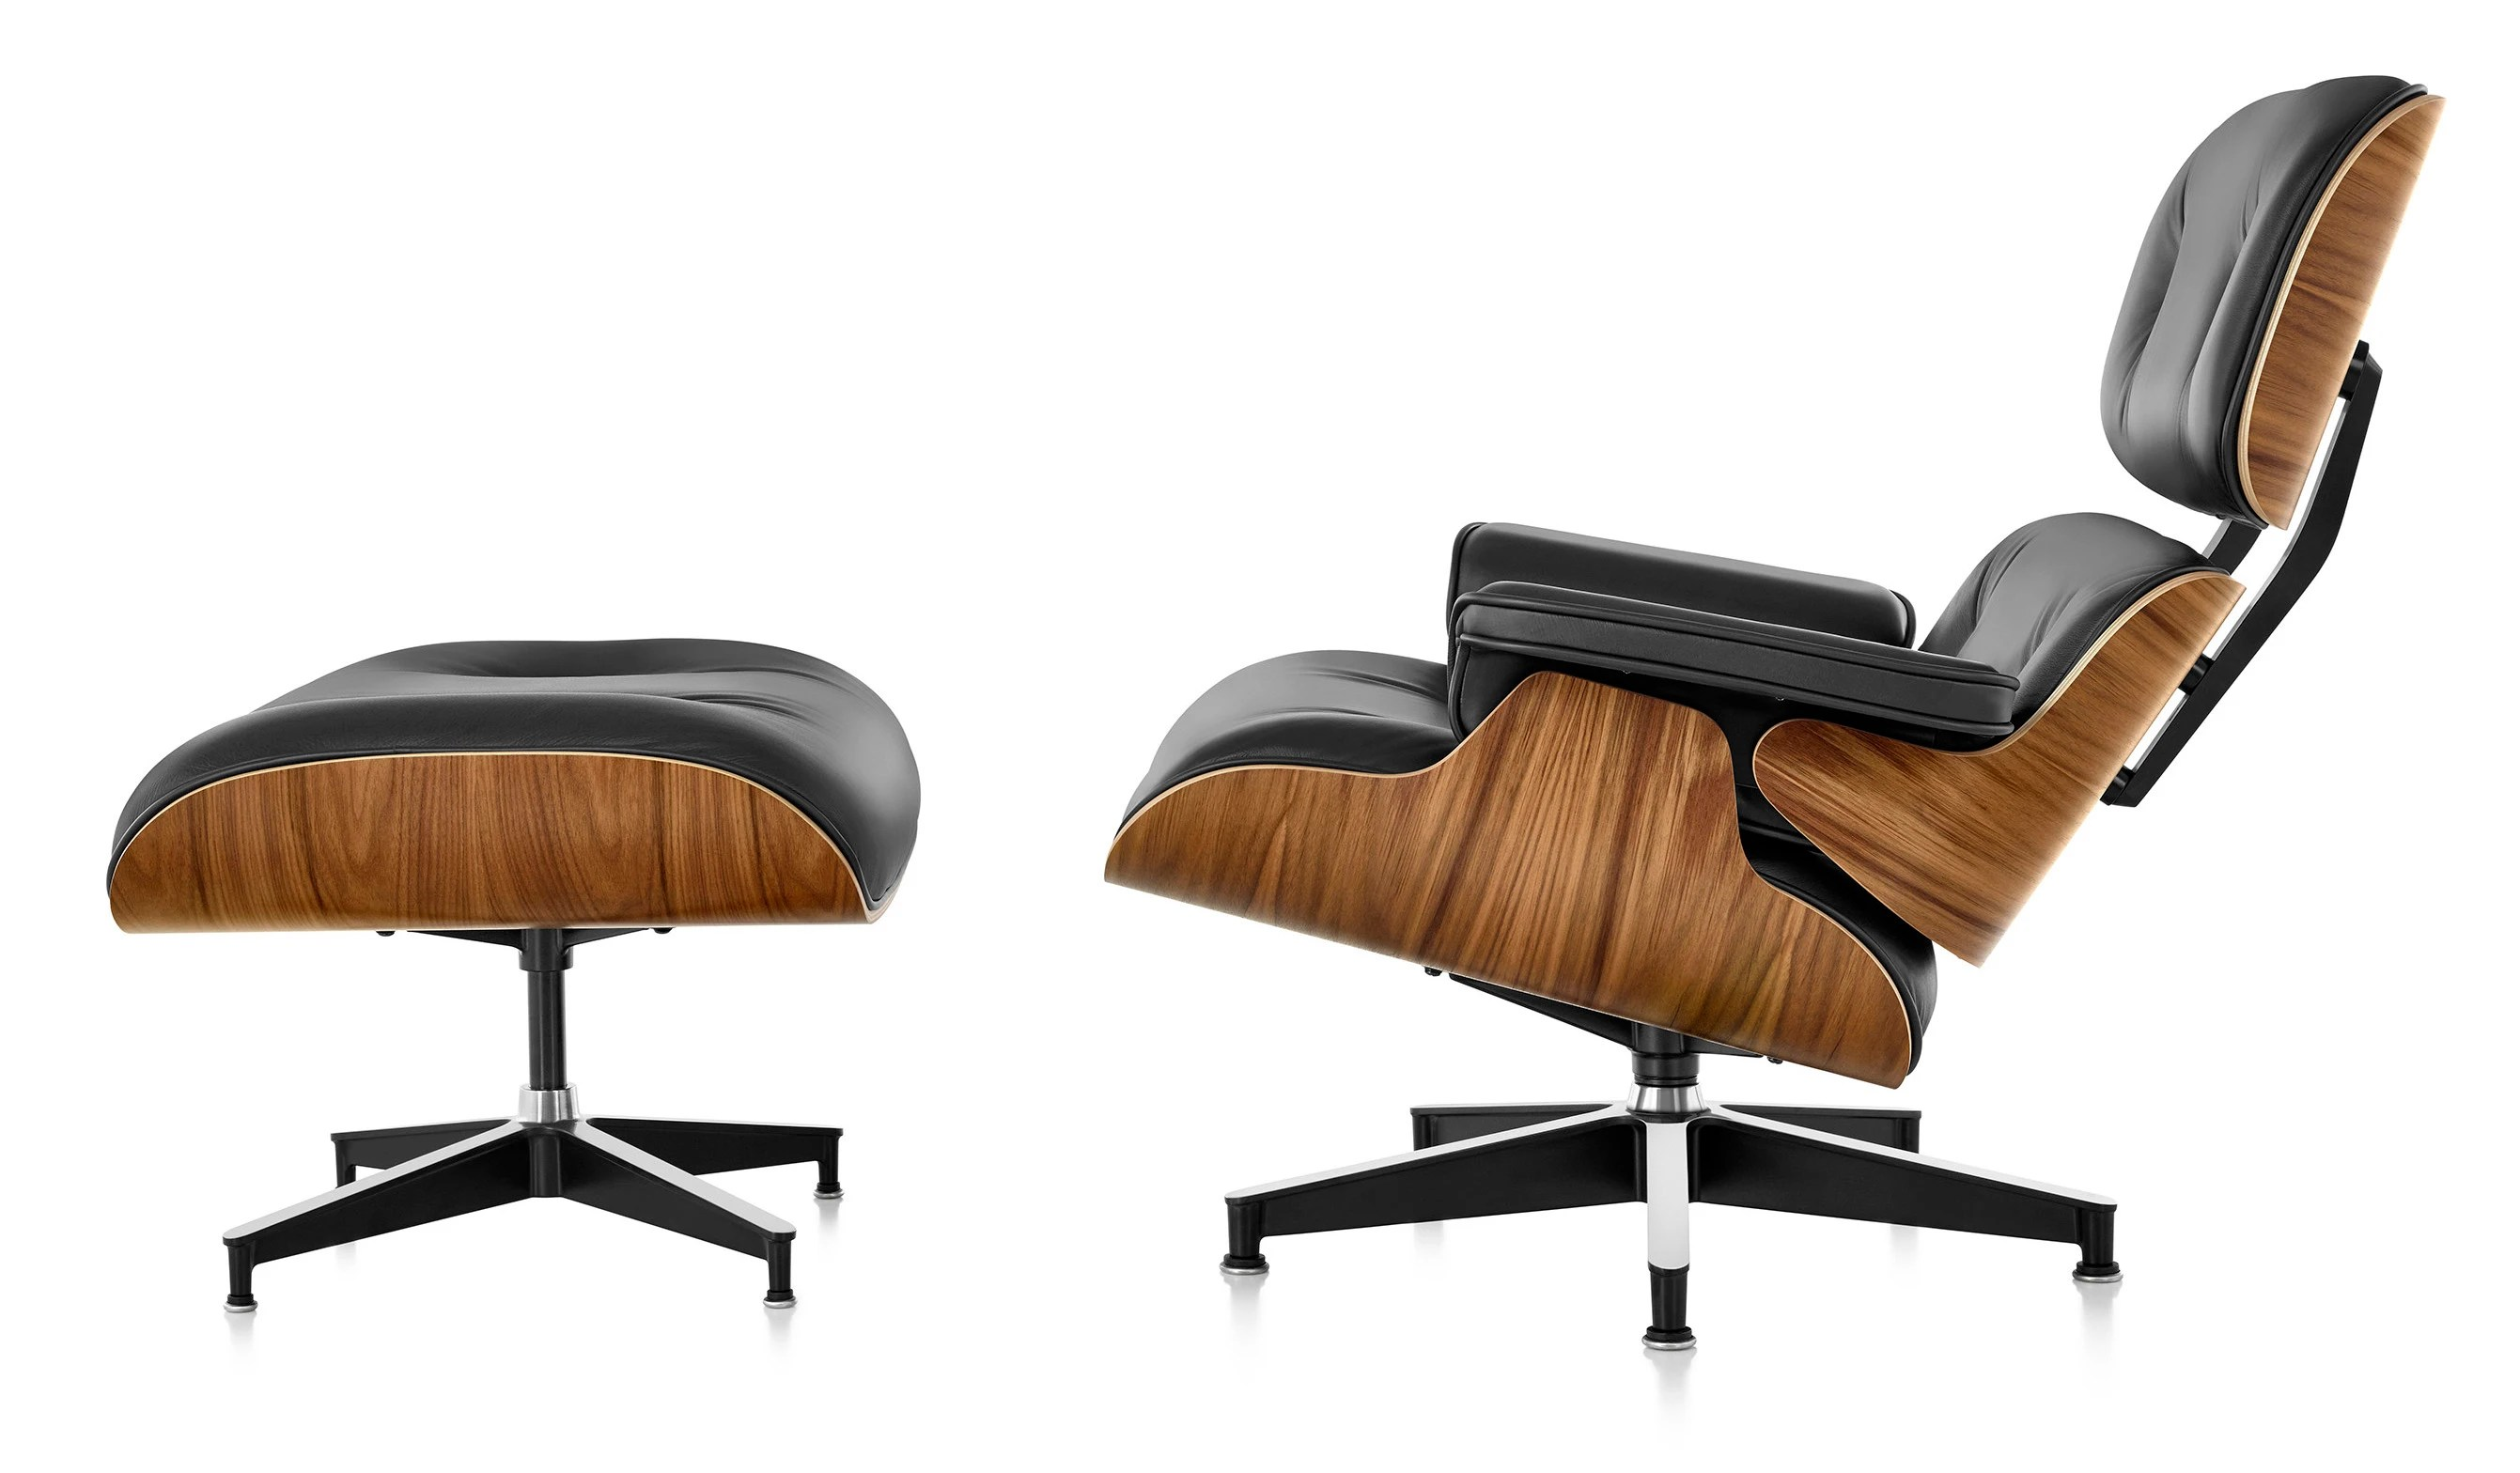 Sensational The Eames Lounge Chair And Ottoman Eames Lounge Chair Alphanode Cool Chair Designs And Ideas Alphanodeonline